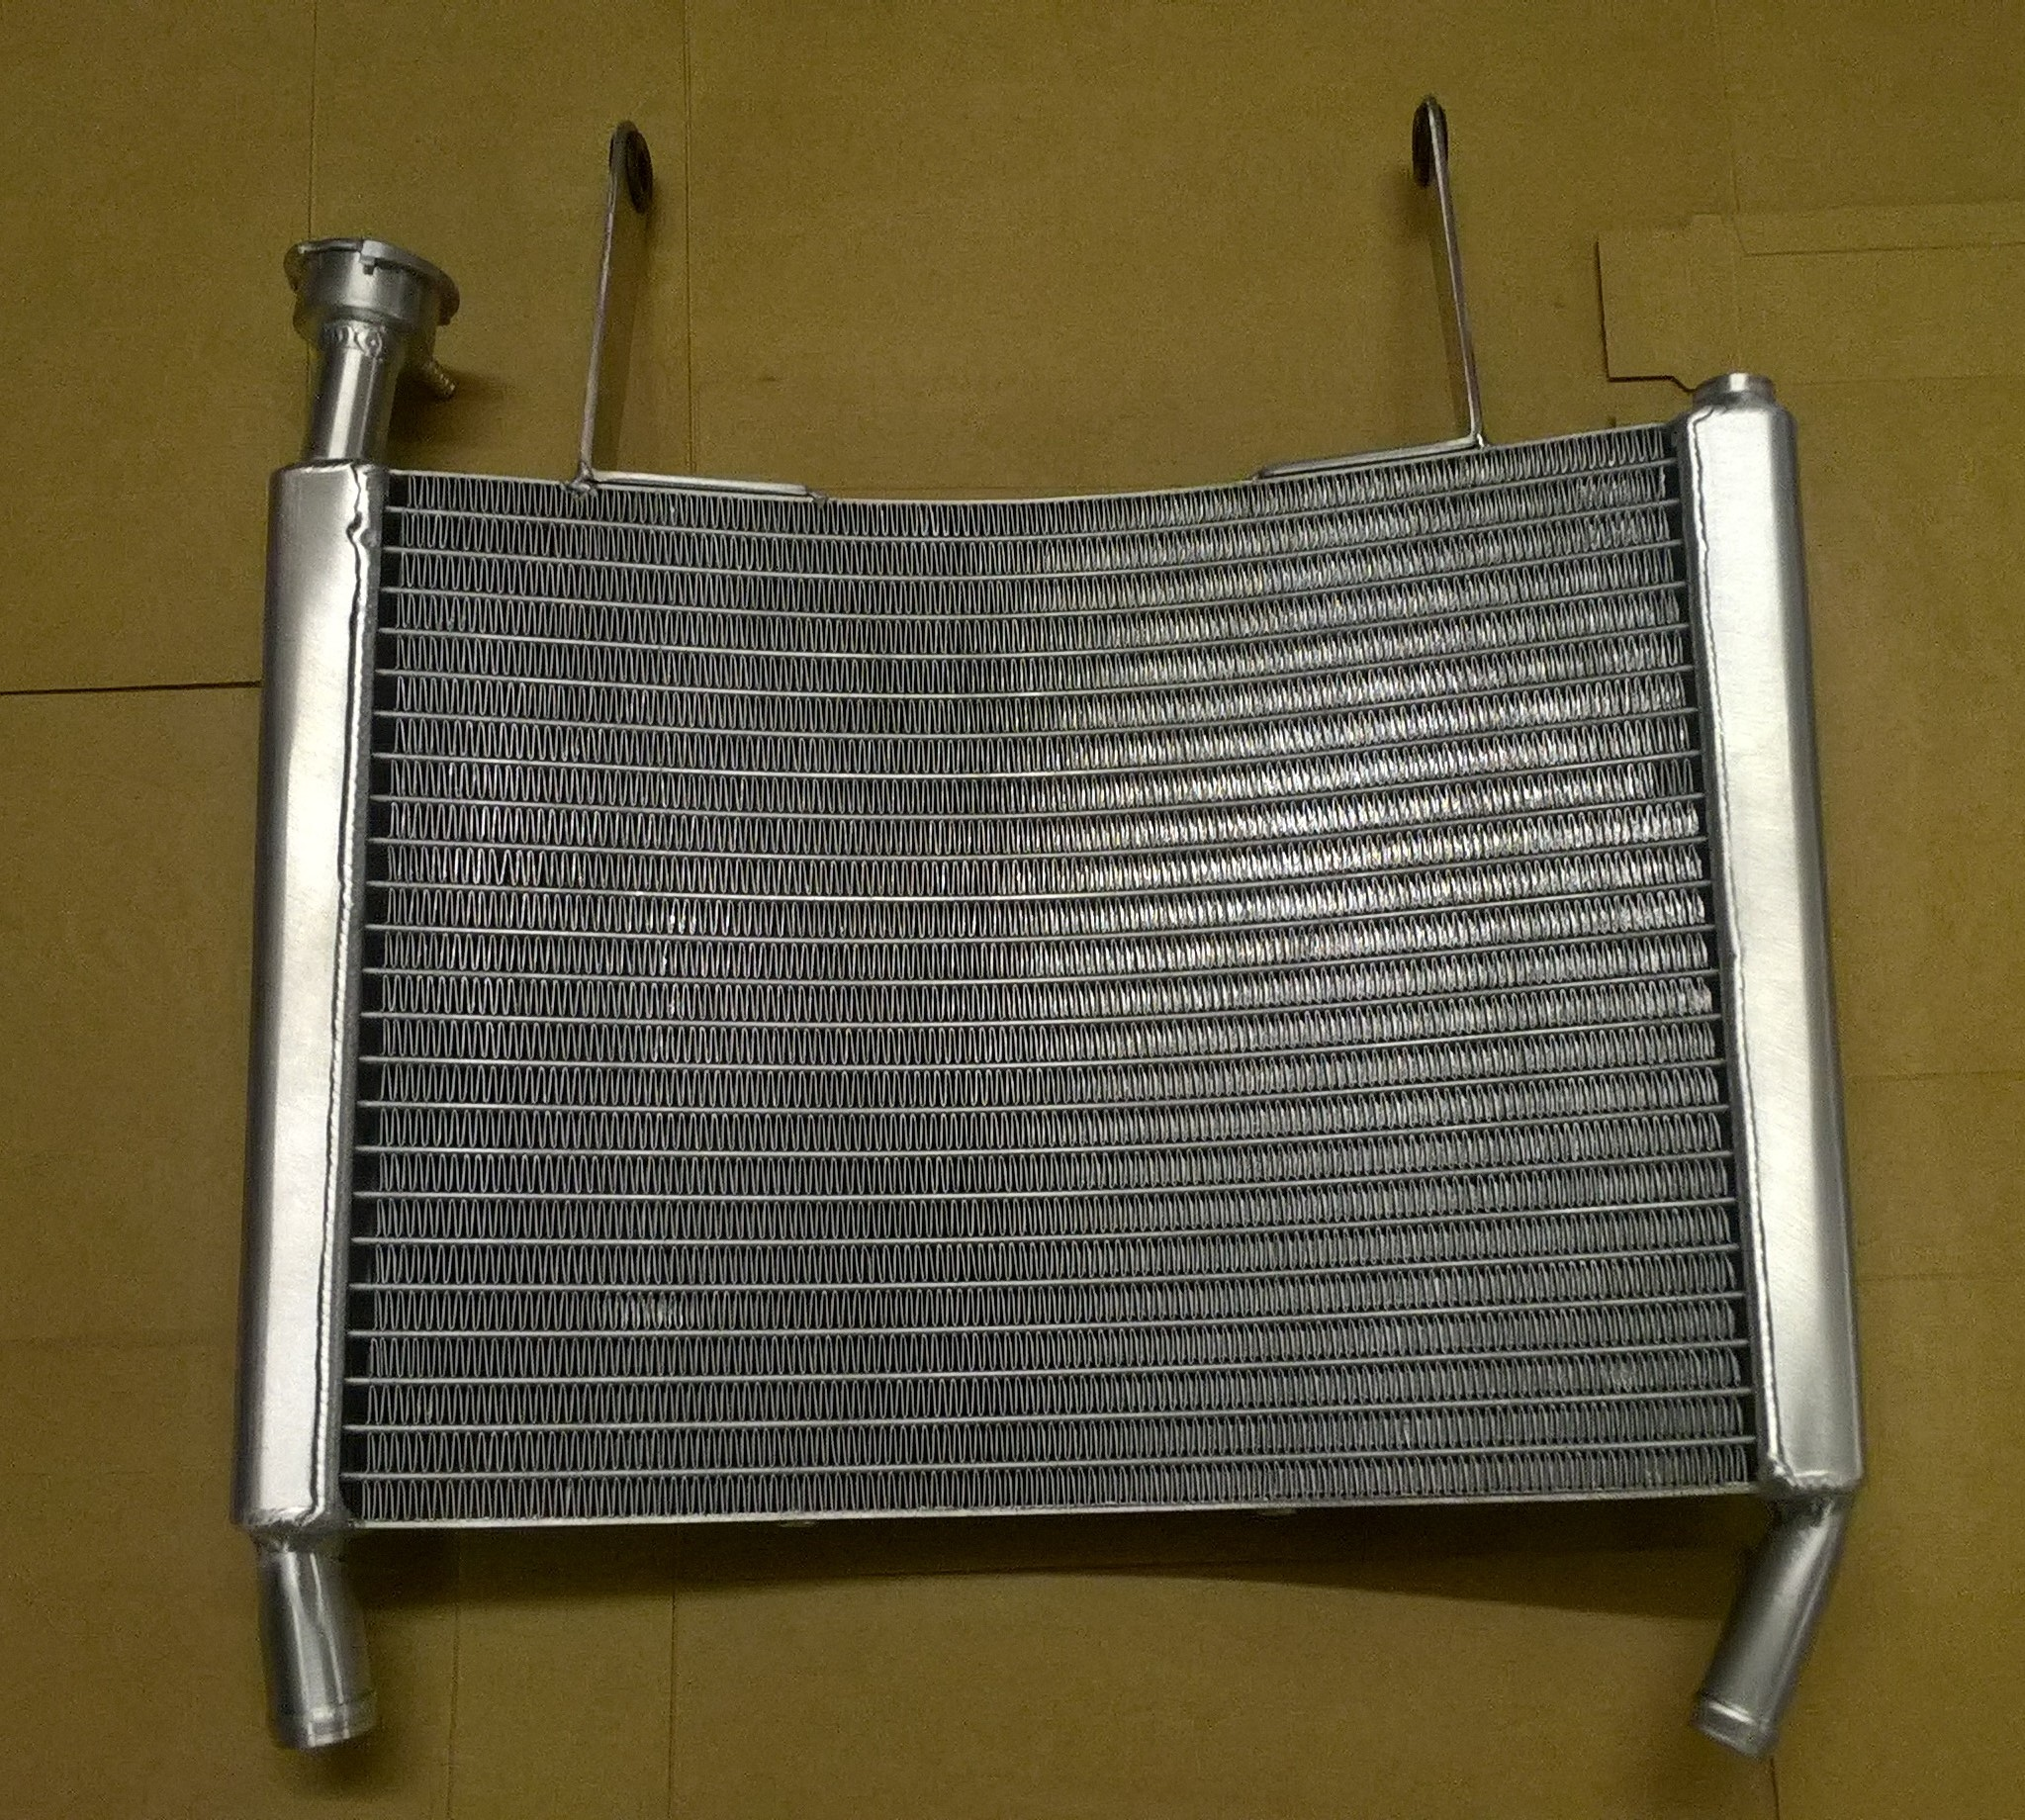 RS250 Radiator Intake Under Yoke Pic2